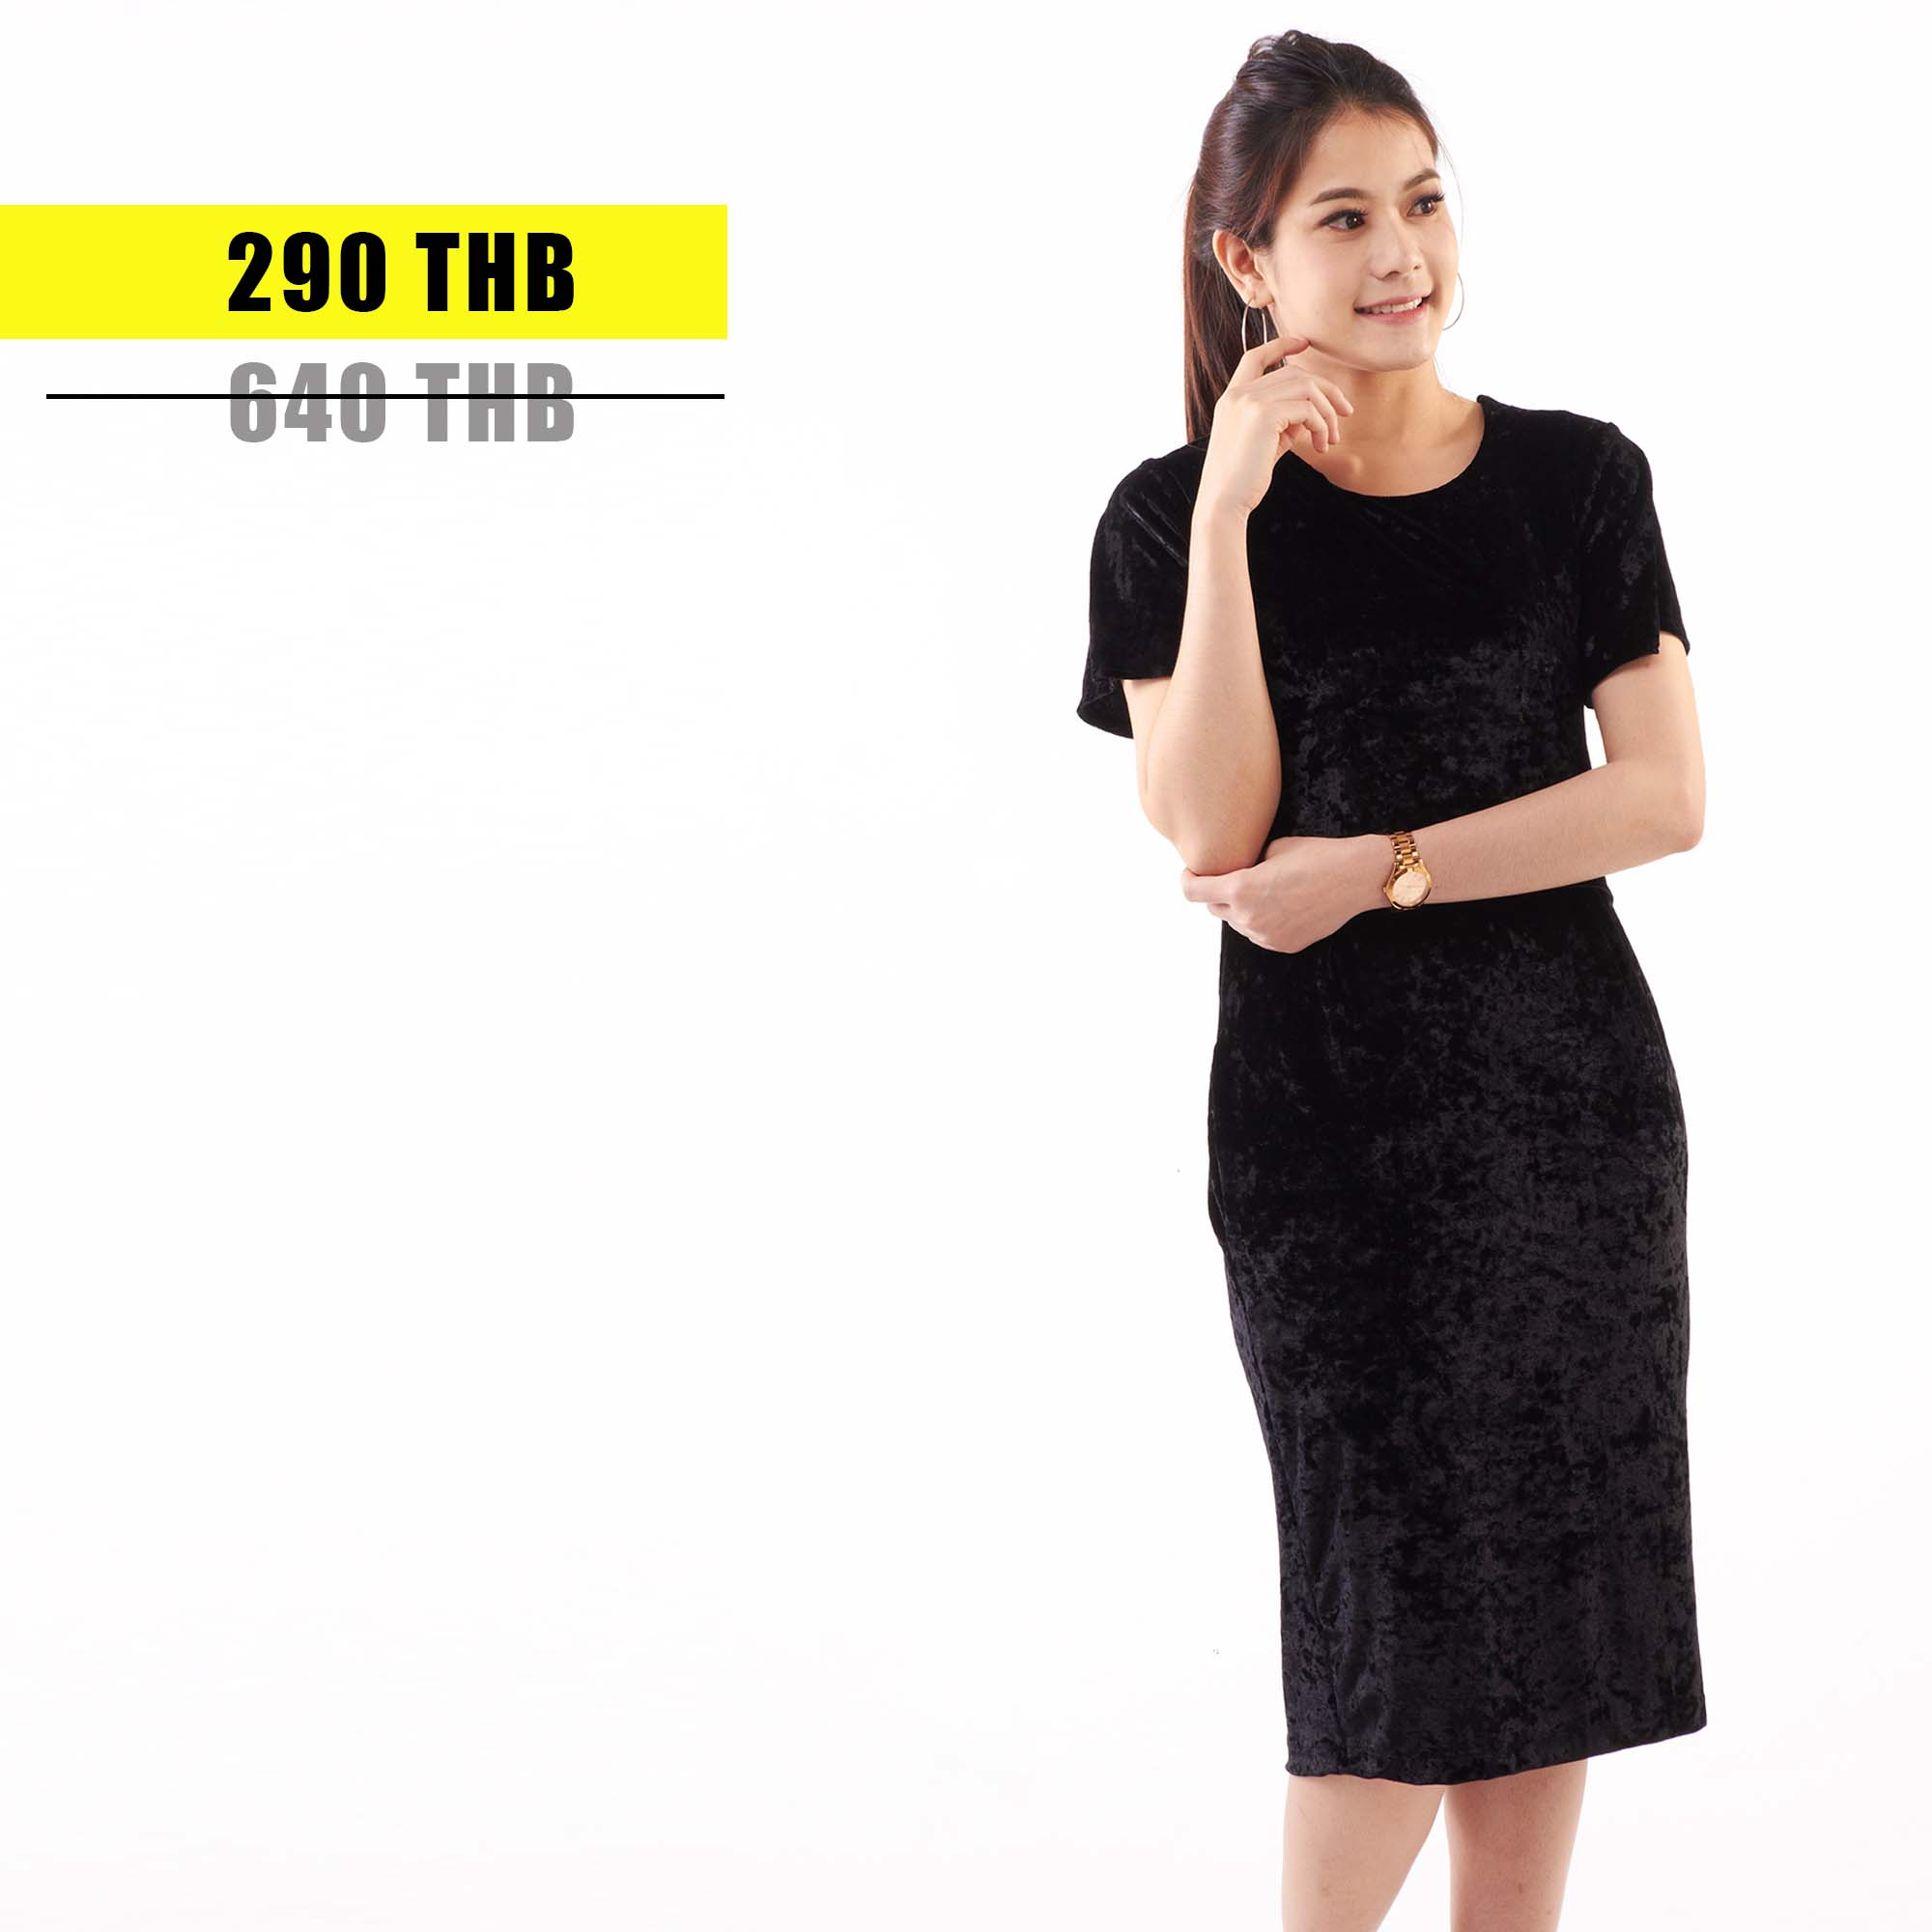 ชุดให้นม Phrimz : Velvet Breastfeeding Dress - Black สีดำ